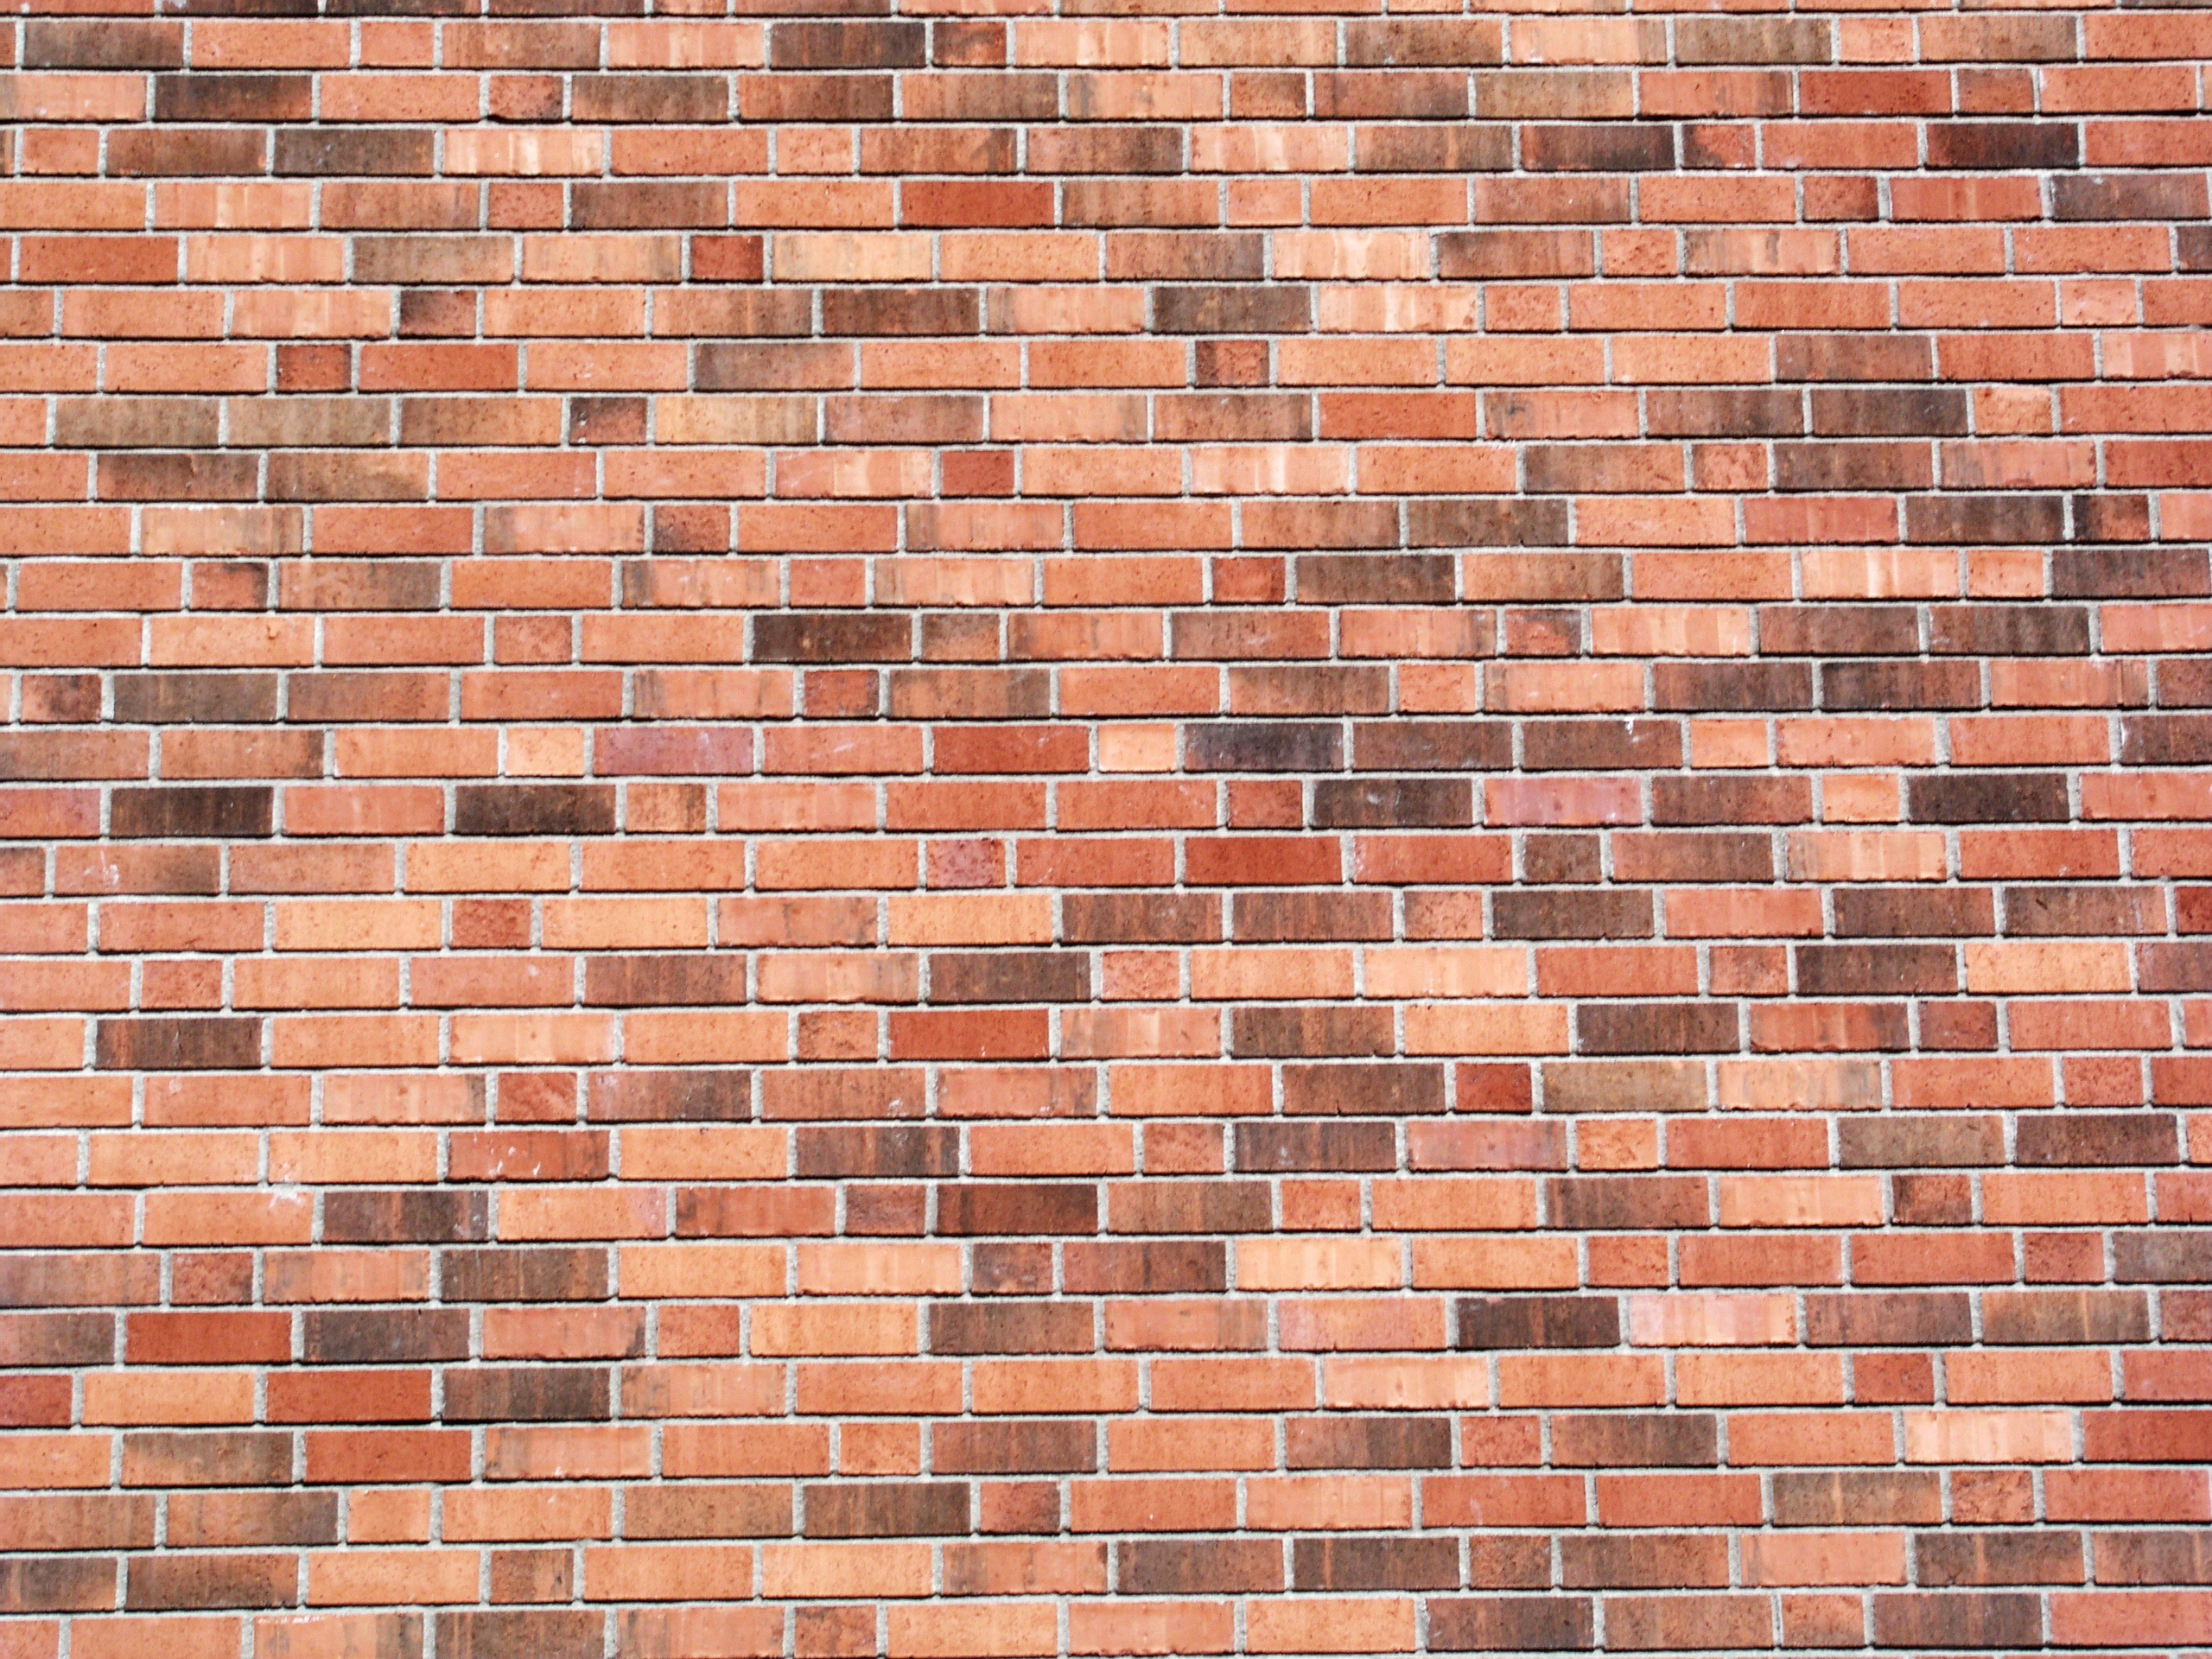 File solna brick wall vilt wikimedia commons - Muros de ladrillo visto ...